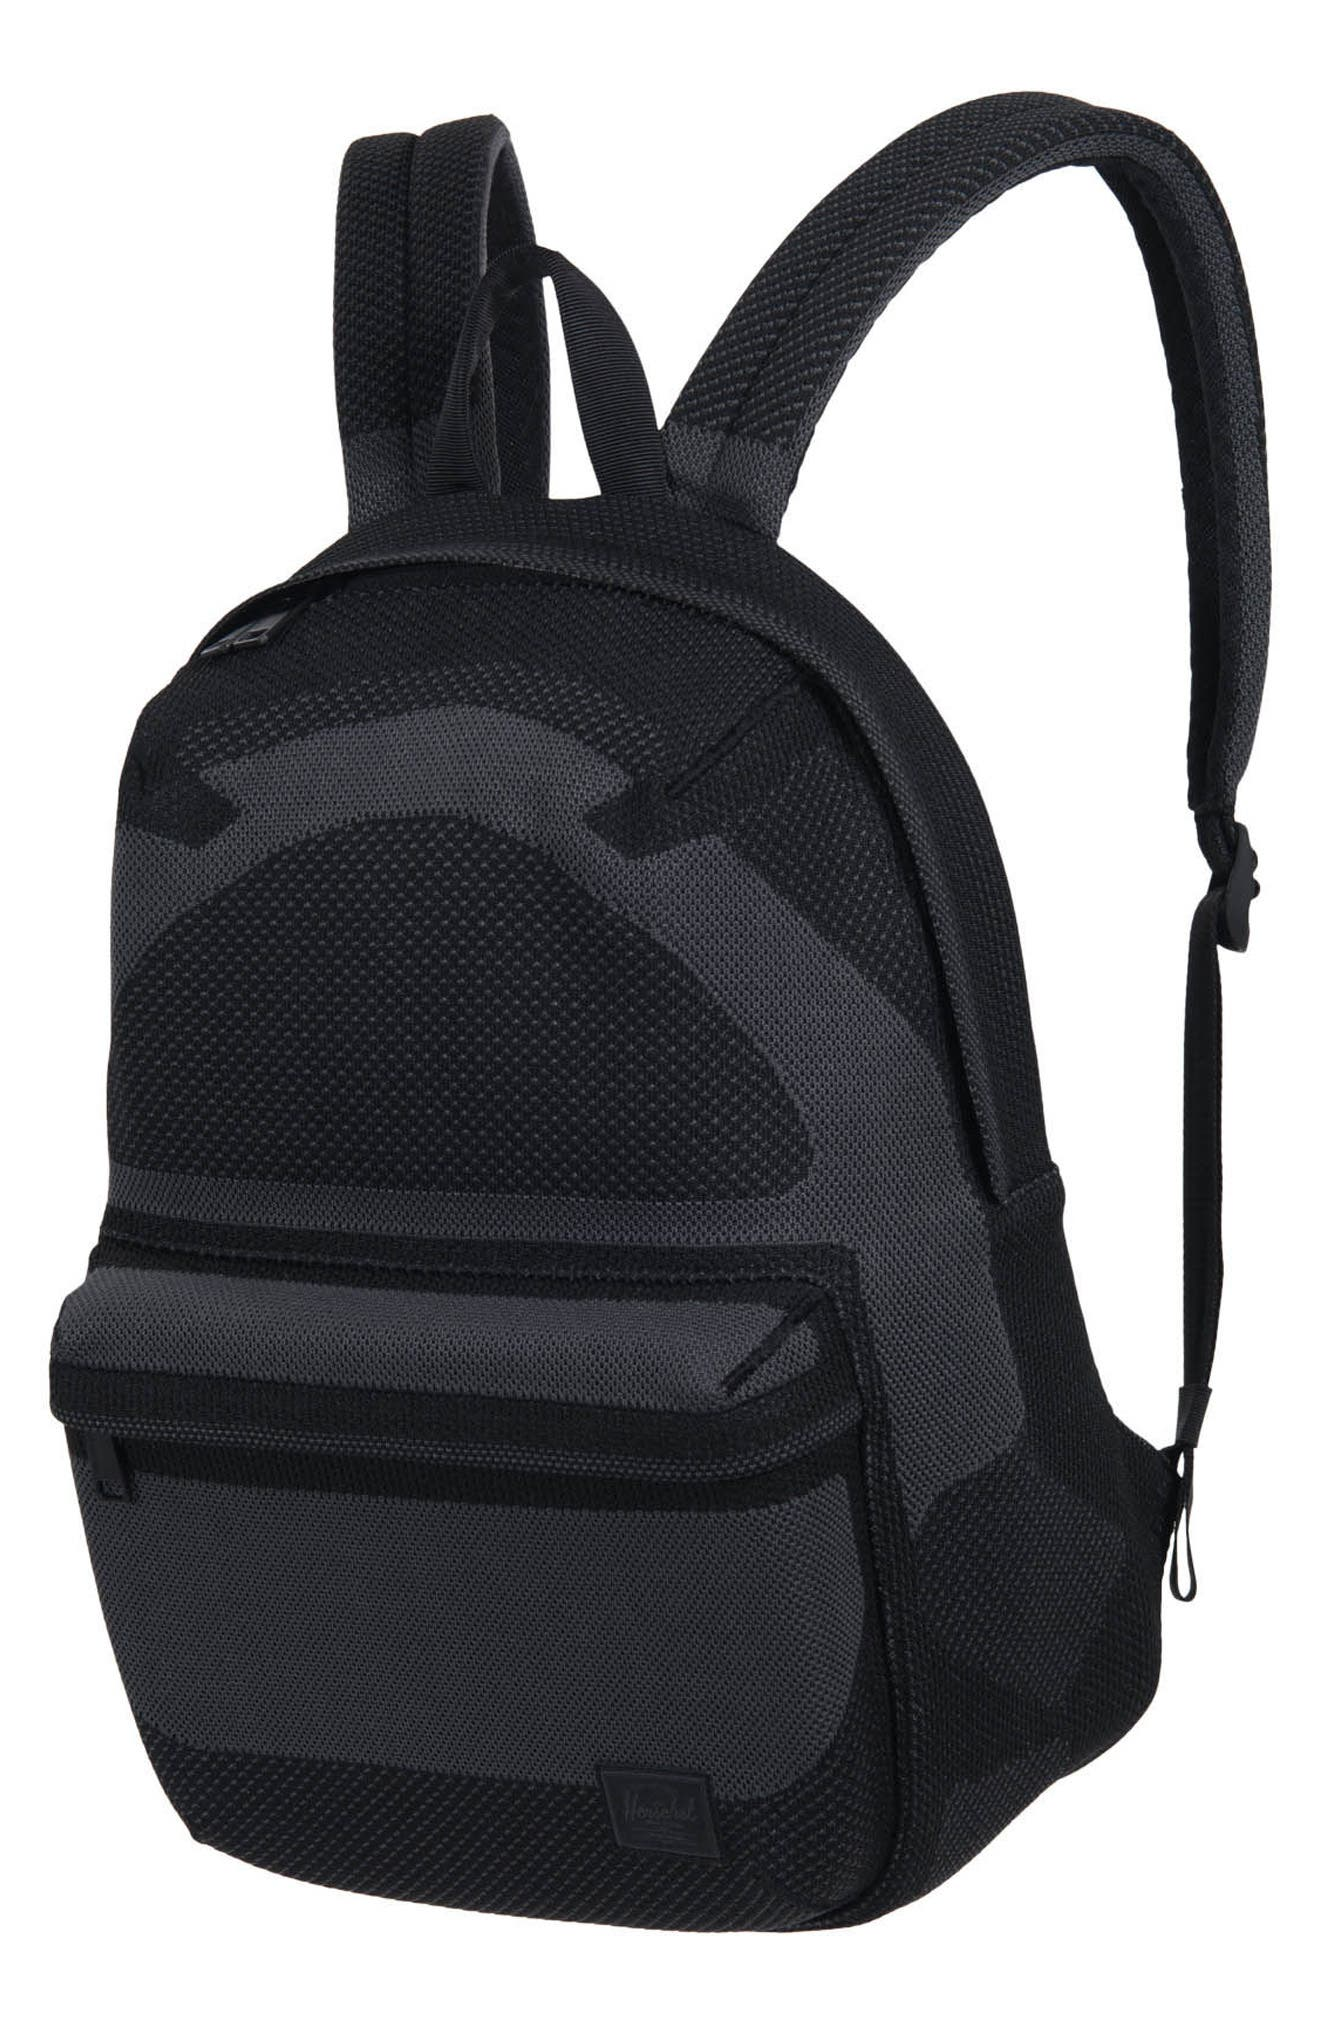 Apex Lawson Backpack,                             Alternate thumbnail 4, color,